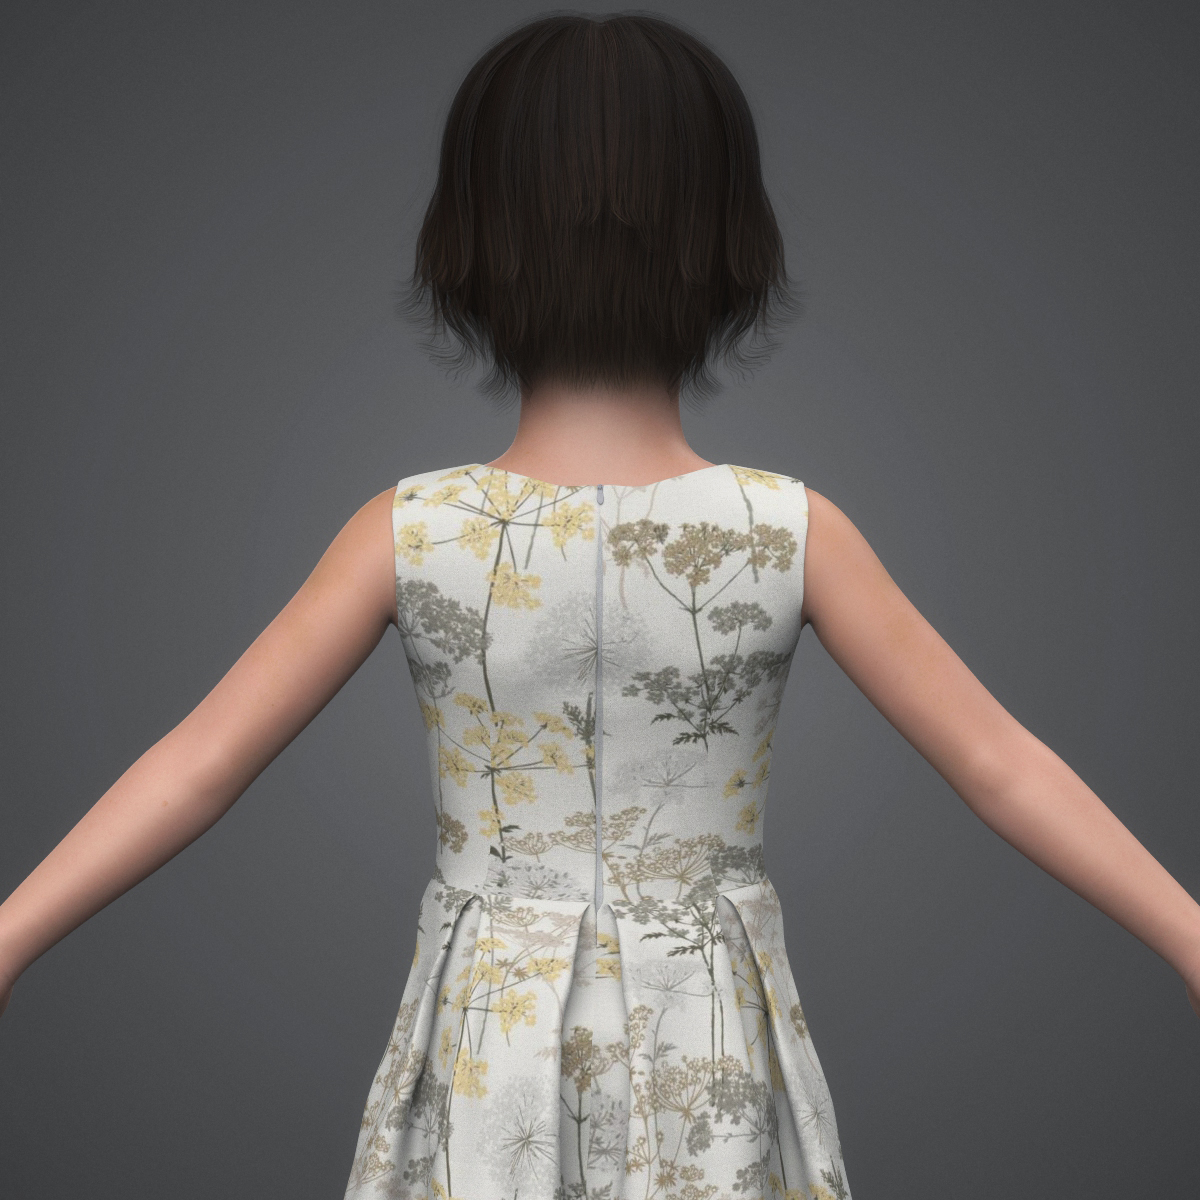 beautiful child girl 3d model max fbx c4d ma mb texture obj 252397